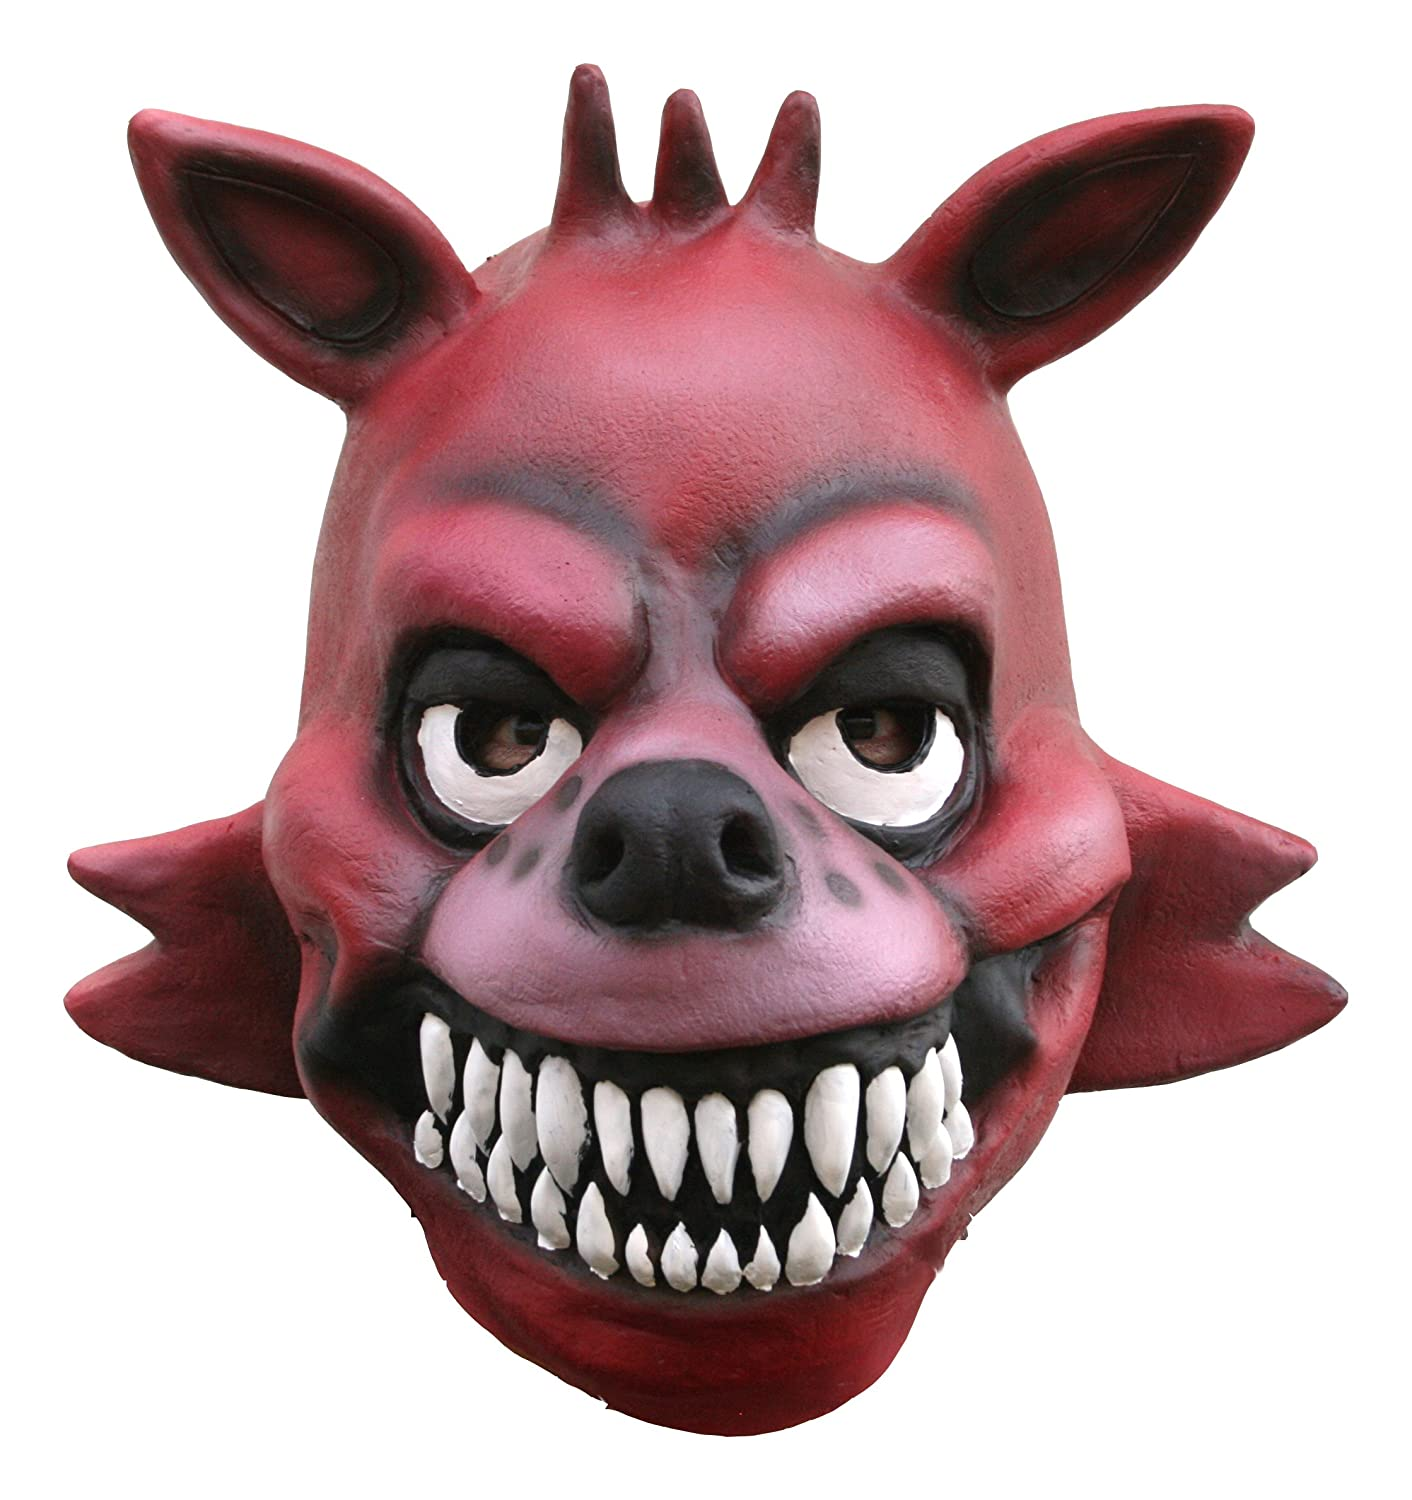 FNAF 3 Five Nights at Freddy Game Foxy the Pirate Costume Cosplay Birthday  Party Toys Dress Up Full Head Mask